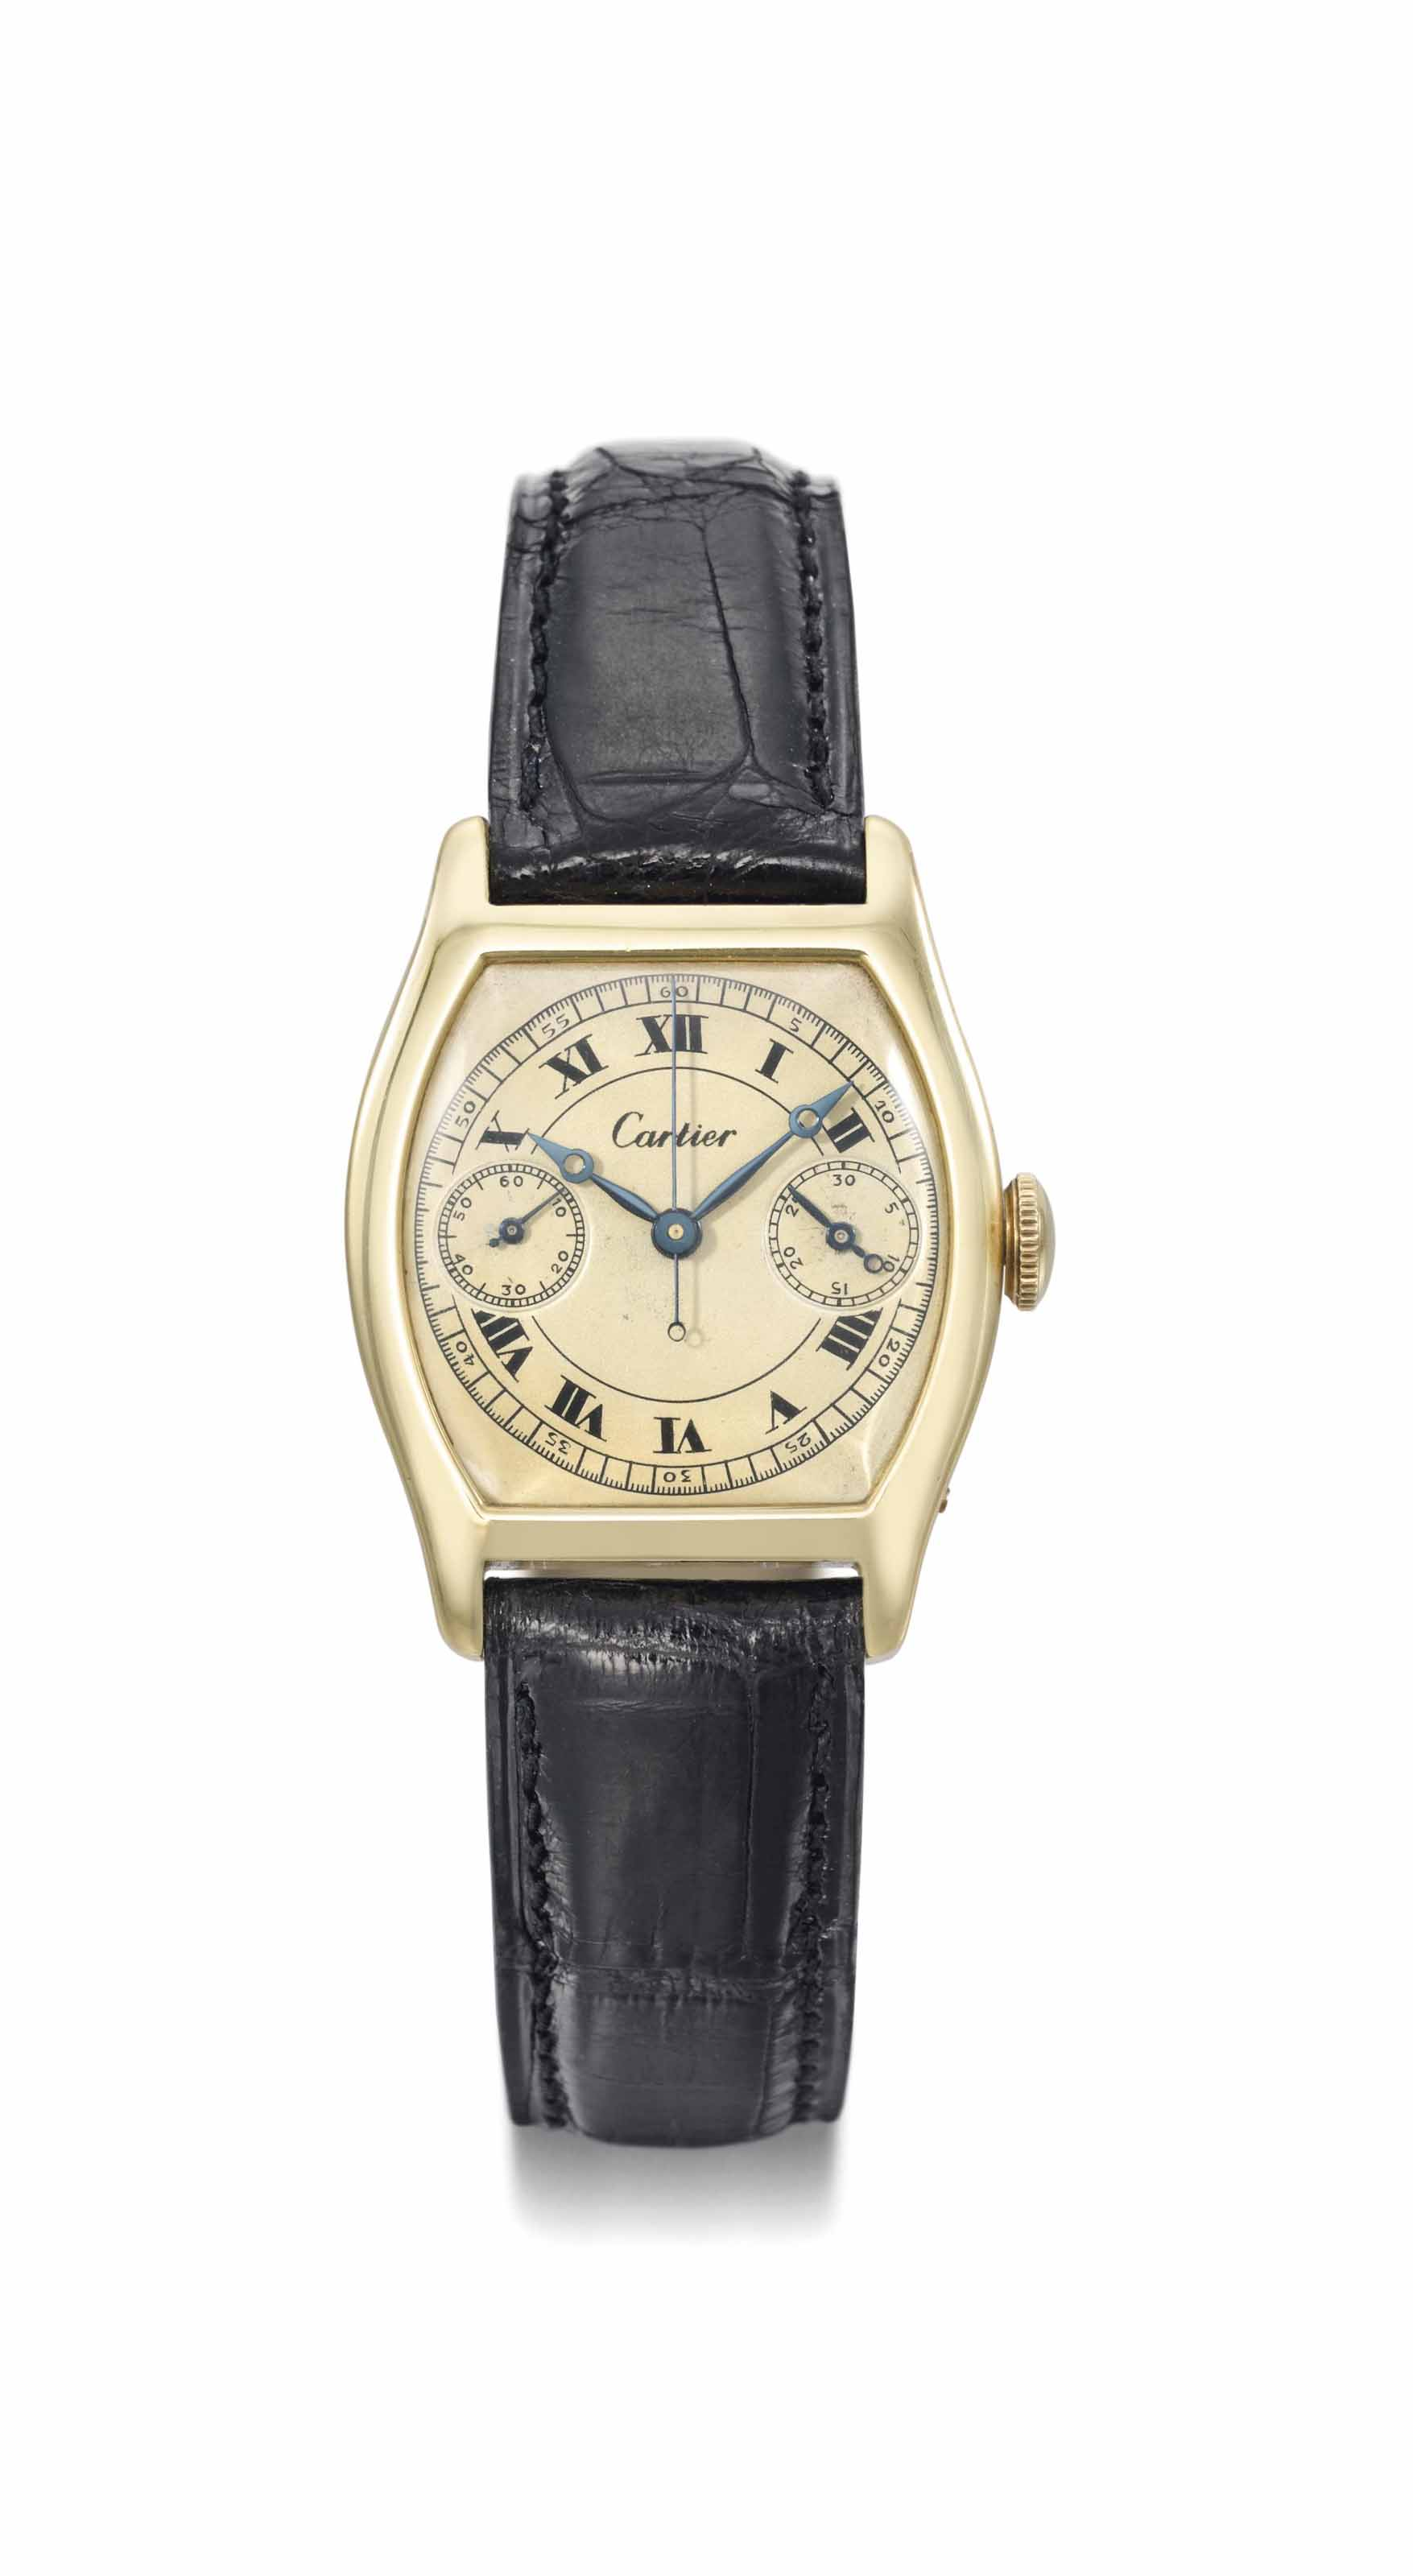 Cartier. A fine and extremely